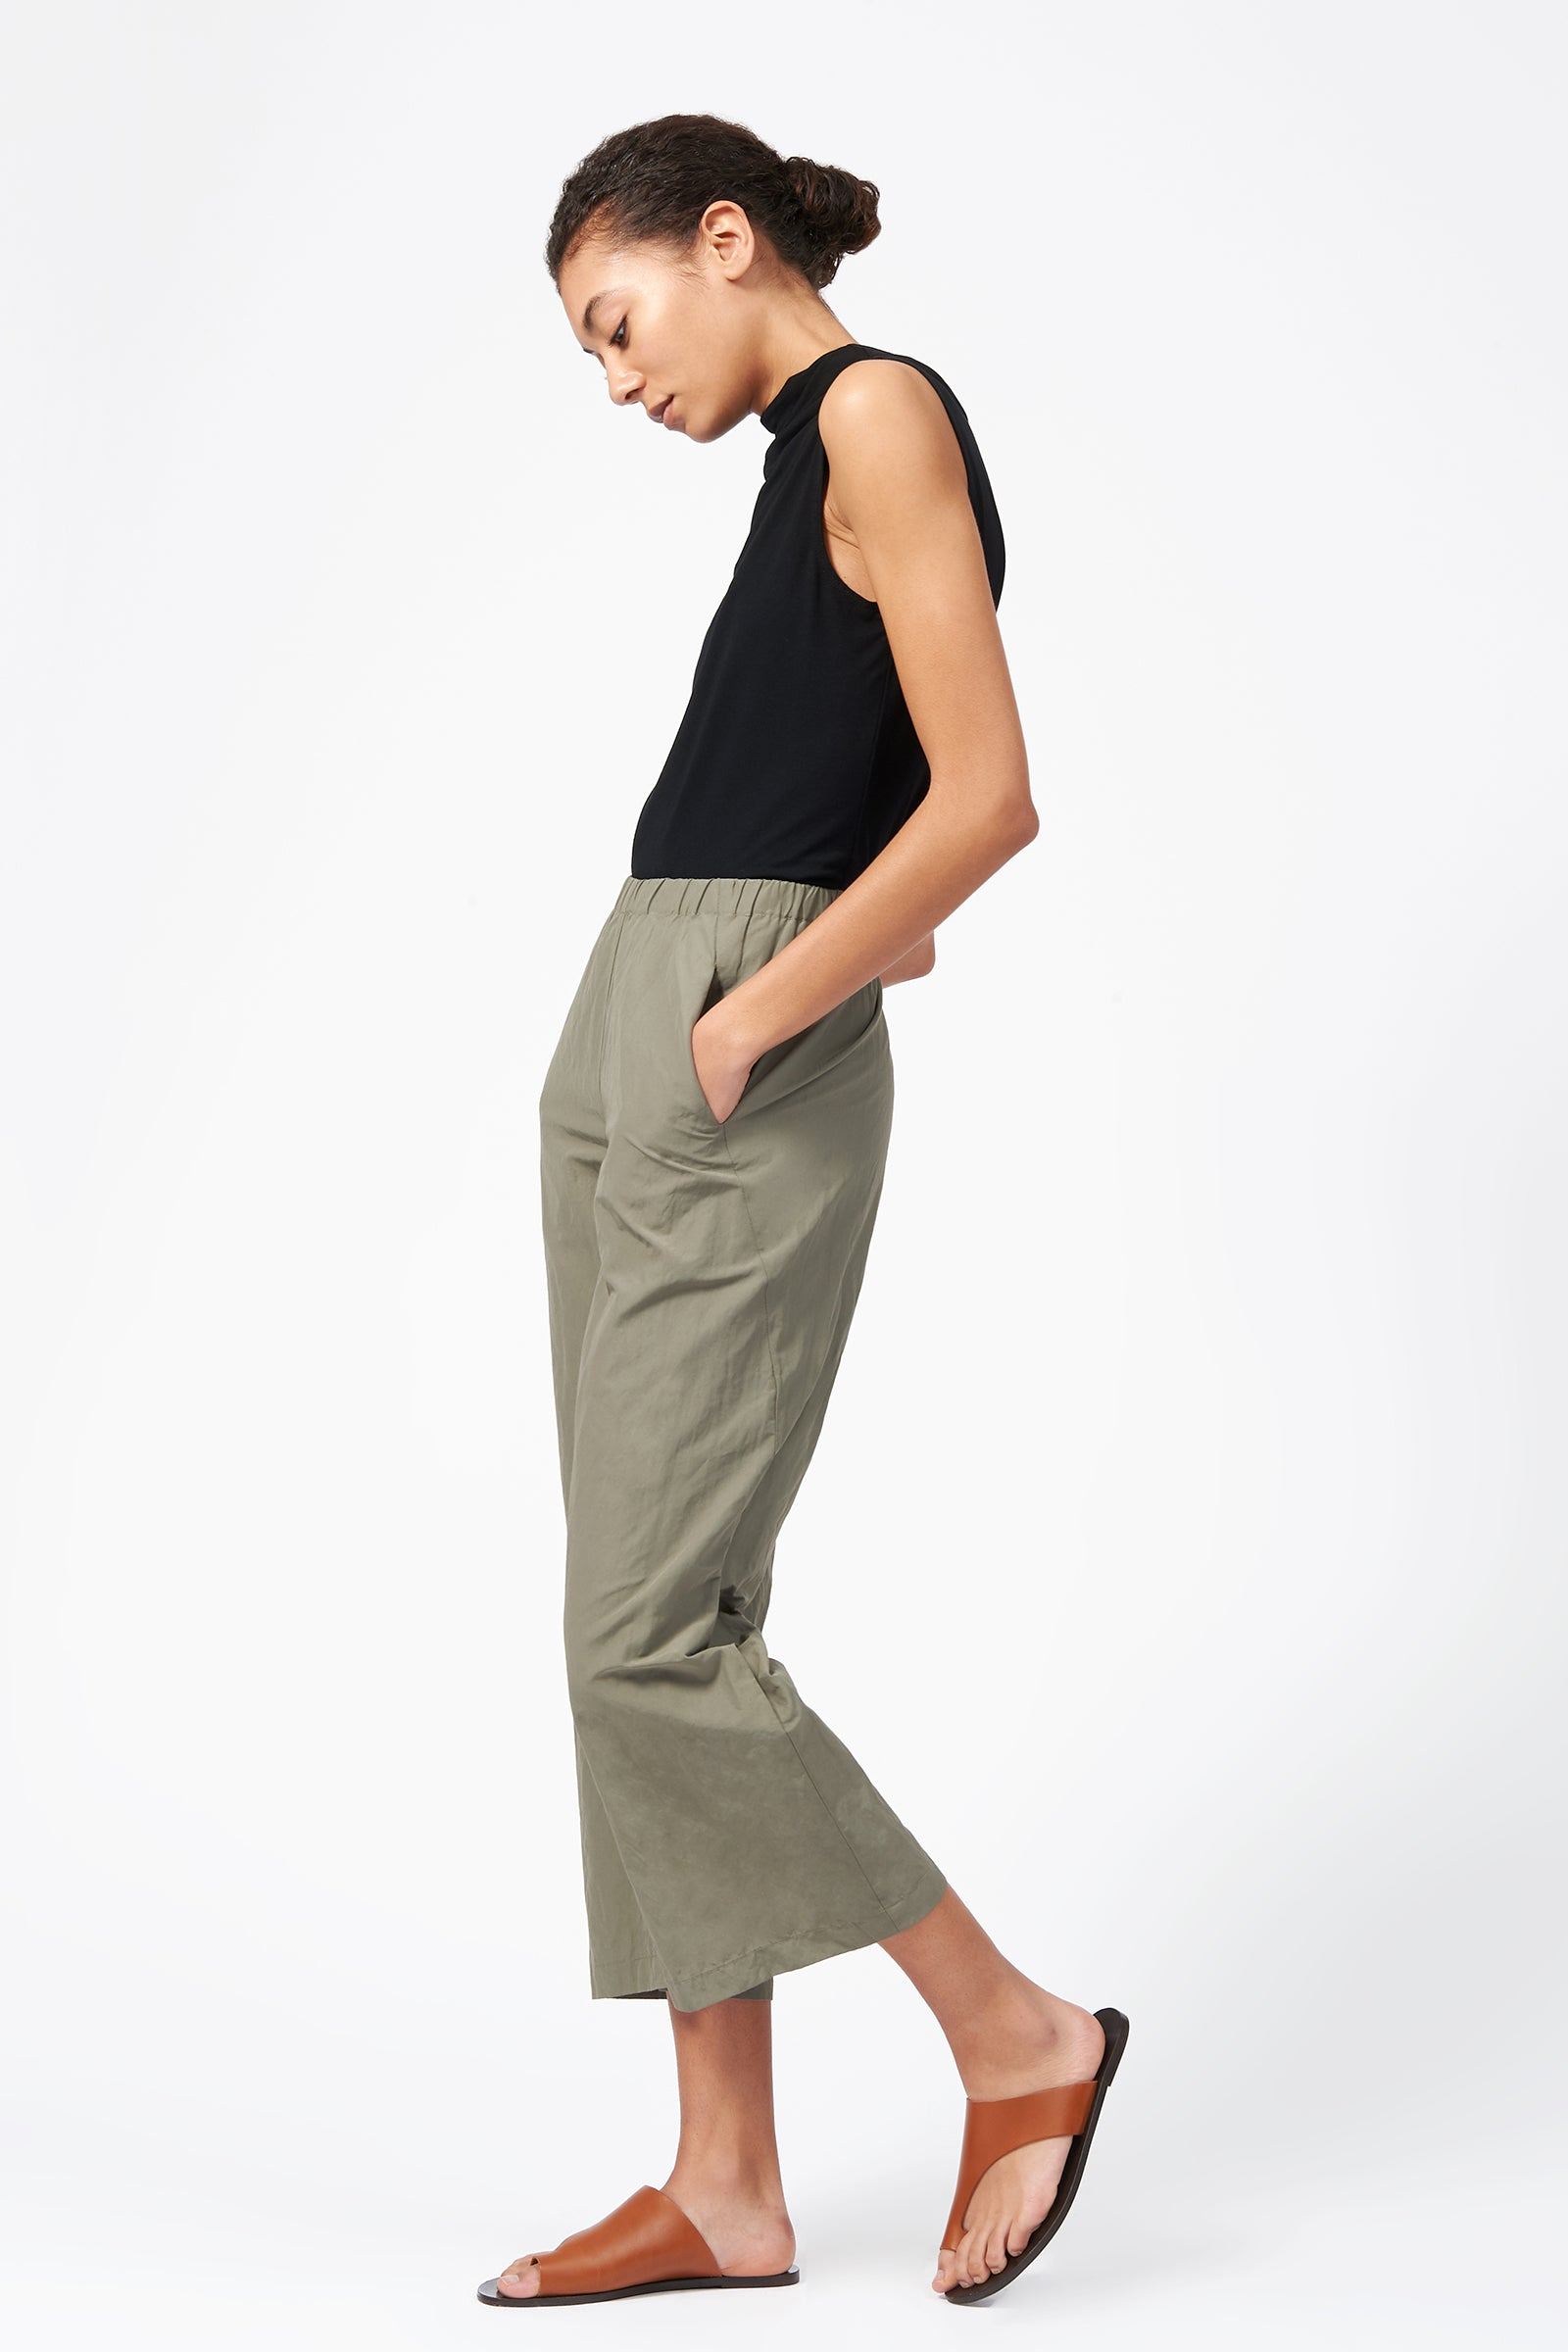 Kal Rieman Split Hem Capri in Olive on Model Full Side View